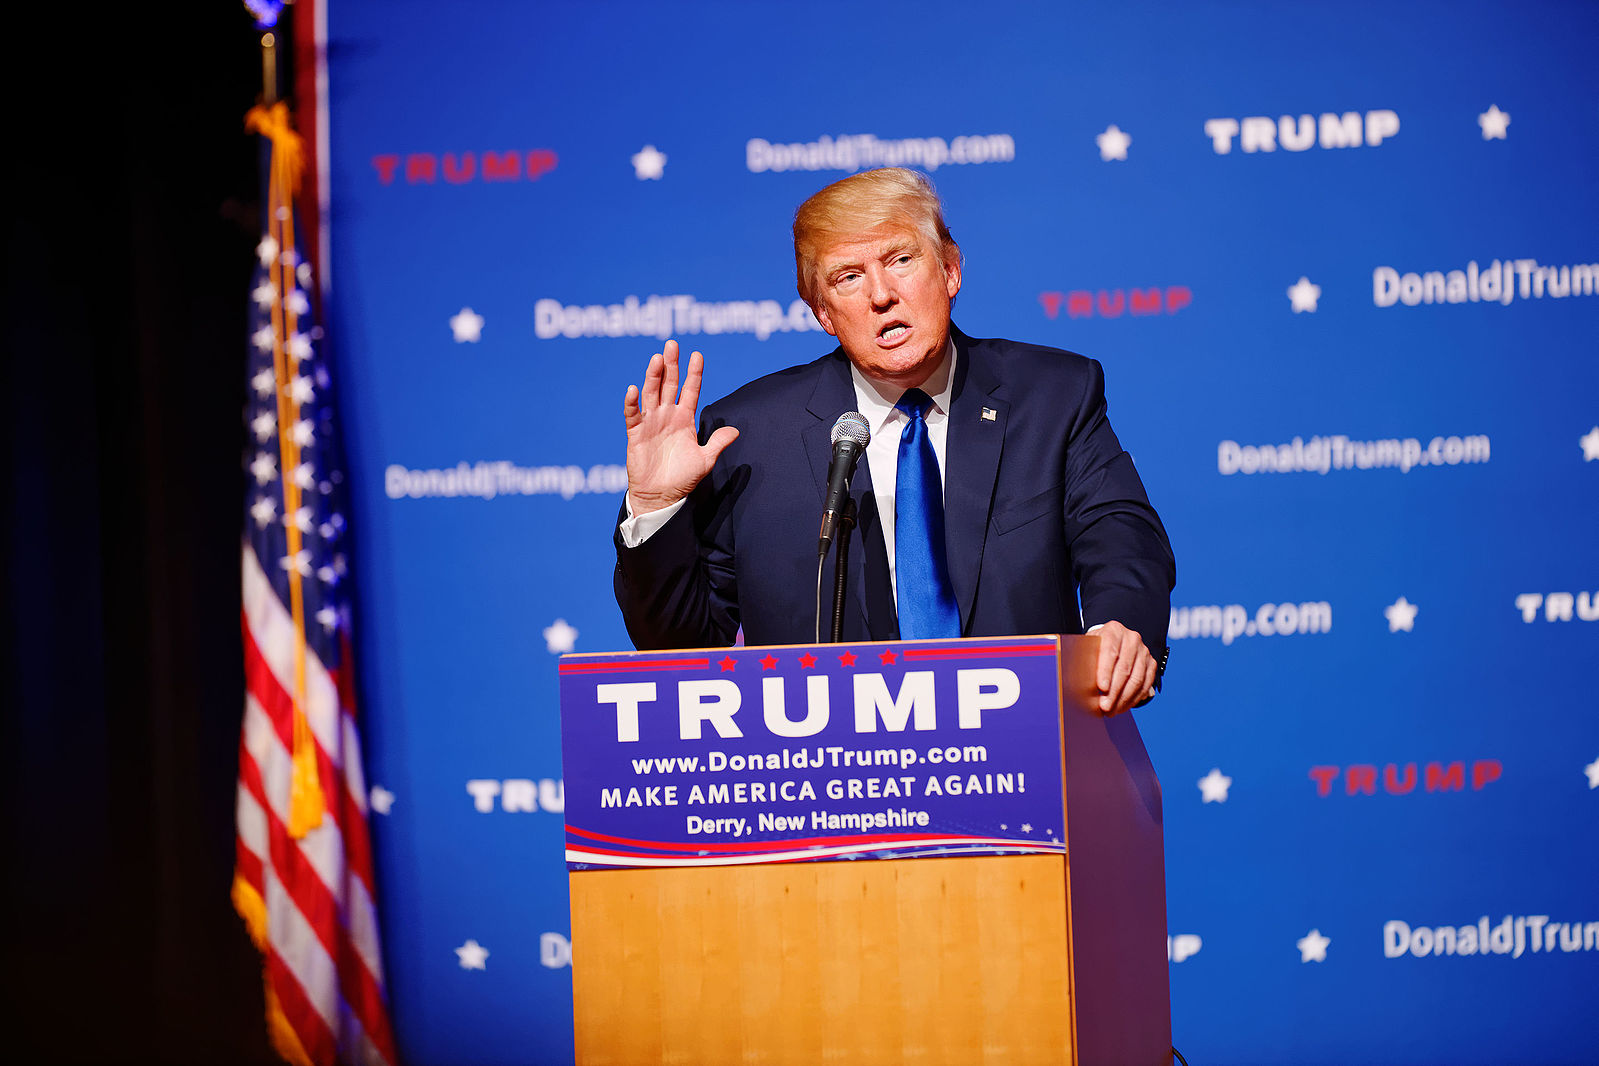 Donald Trump addresses a town-hall meeting in Derry, N.H. on Aug. 19, 2015. (Michael Vadon/Wikimedia Commons)